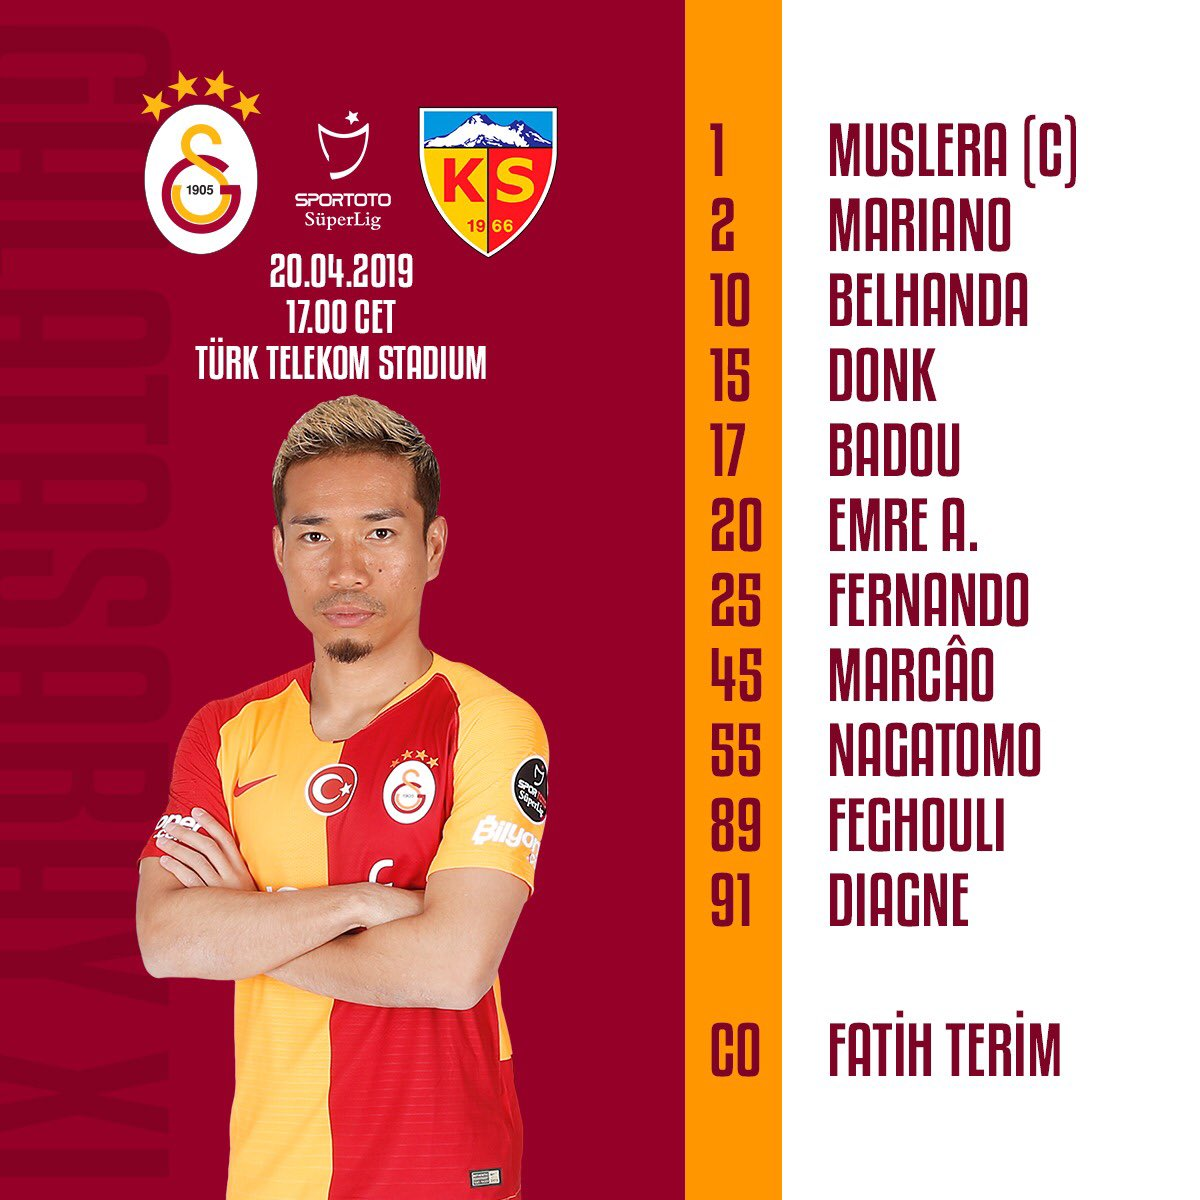 Our starting line-up for the evening! #GSvKYS